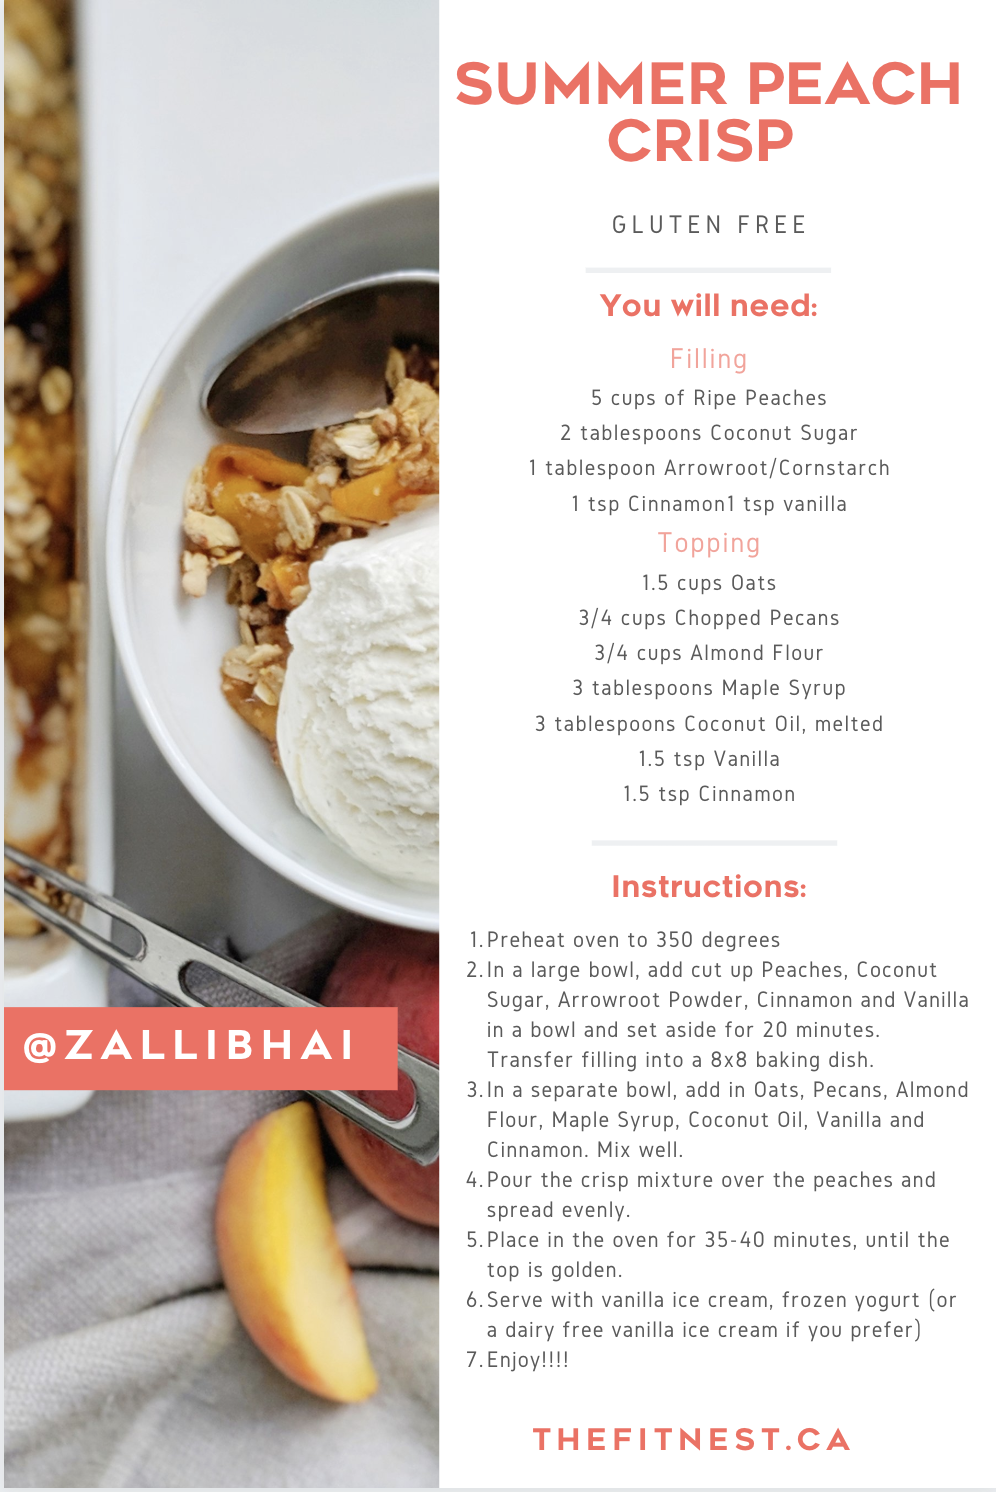 Summer Peach Crisp Recipe Card Fitnest